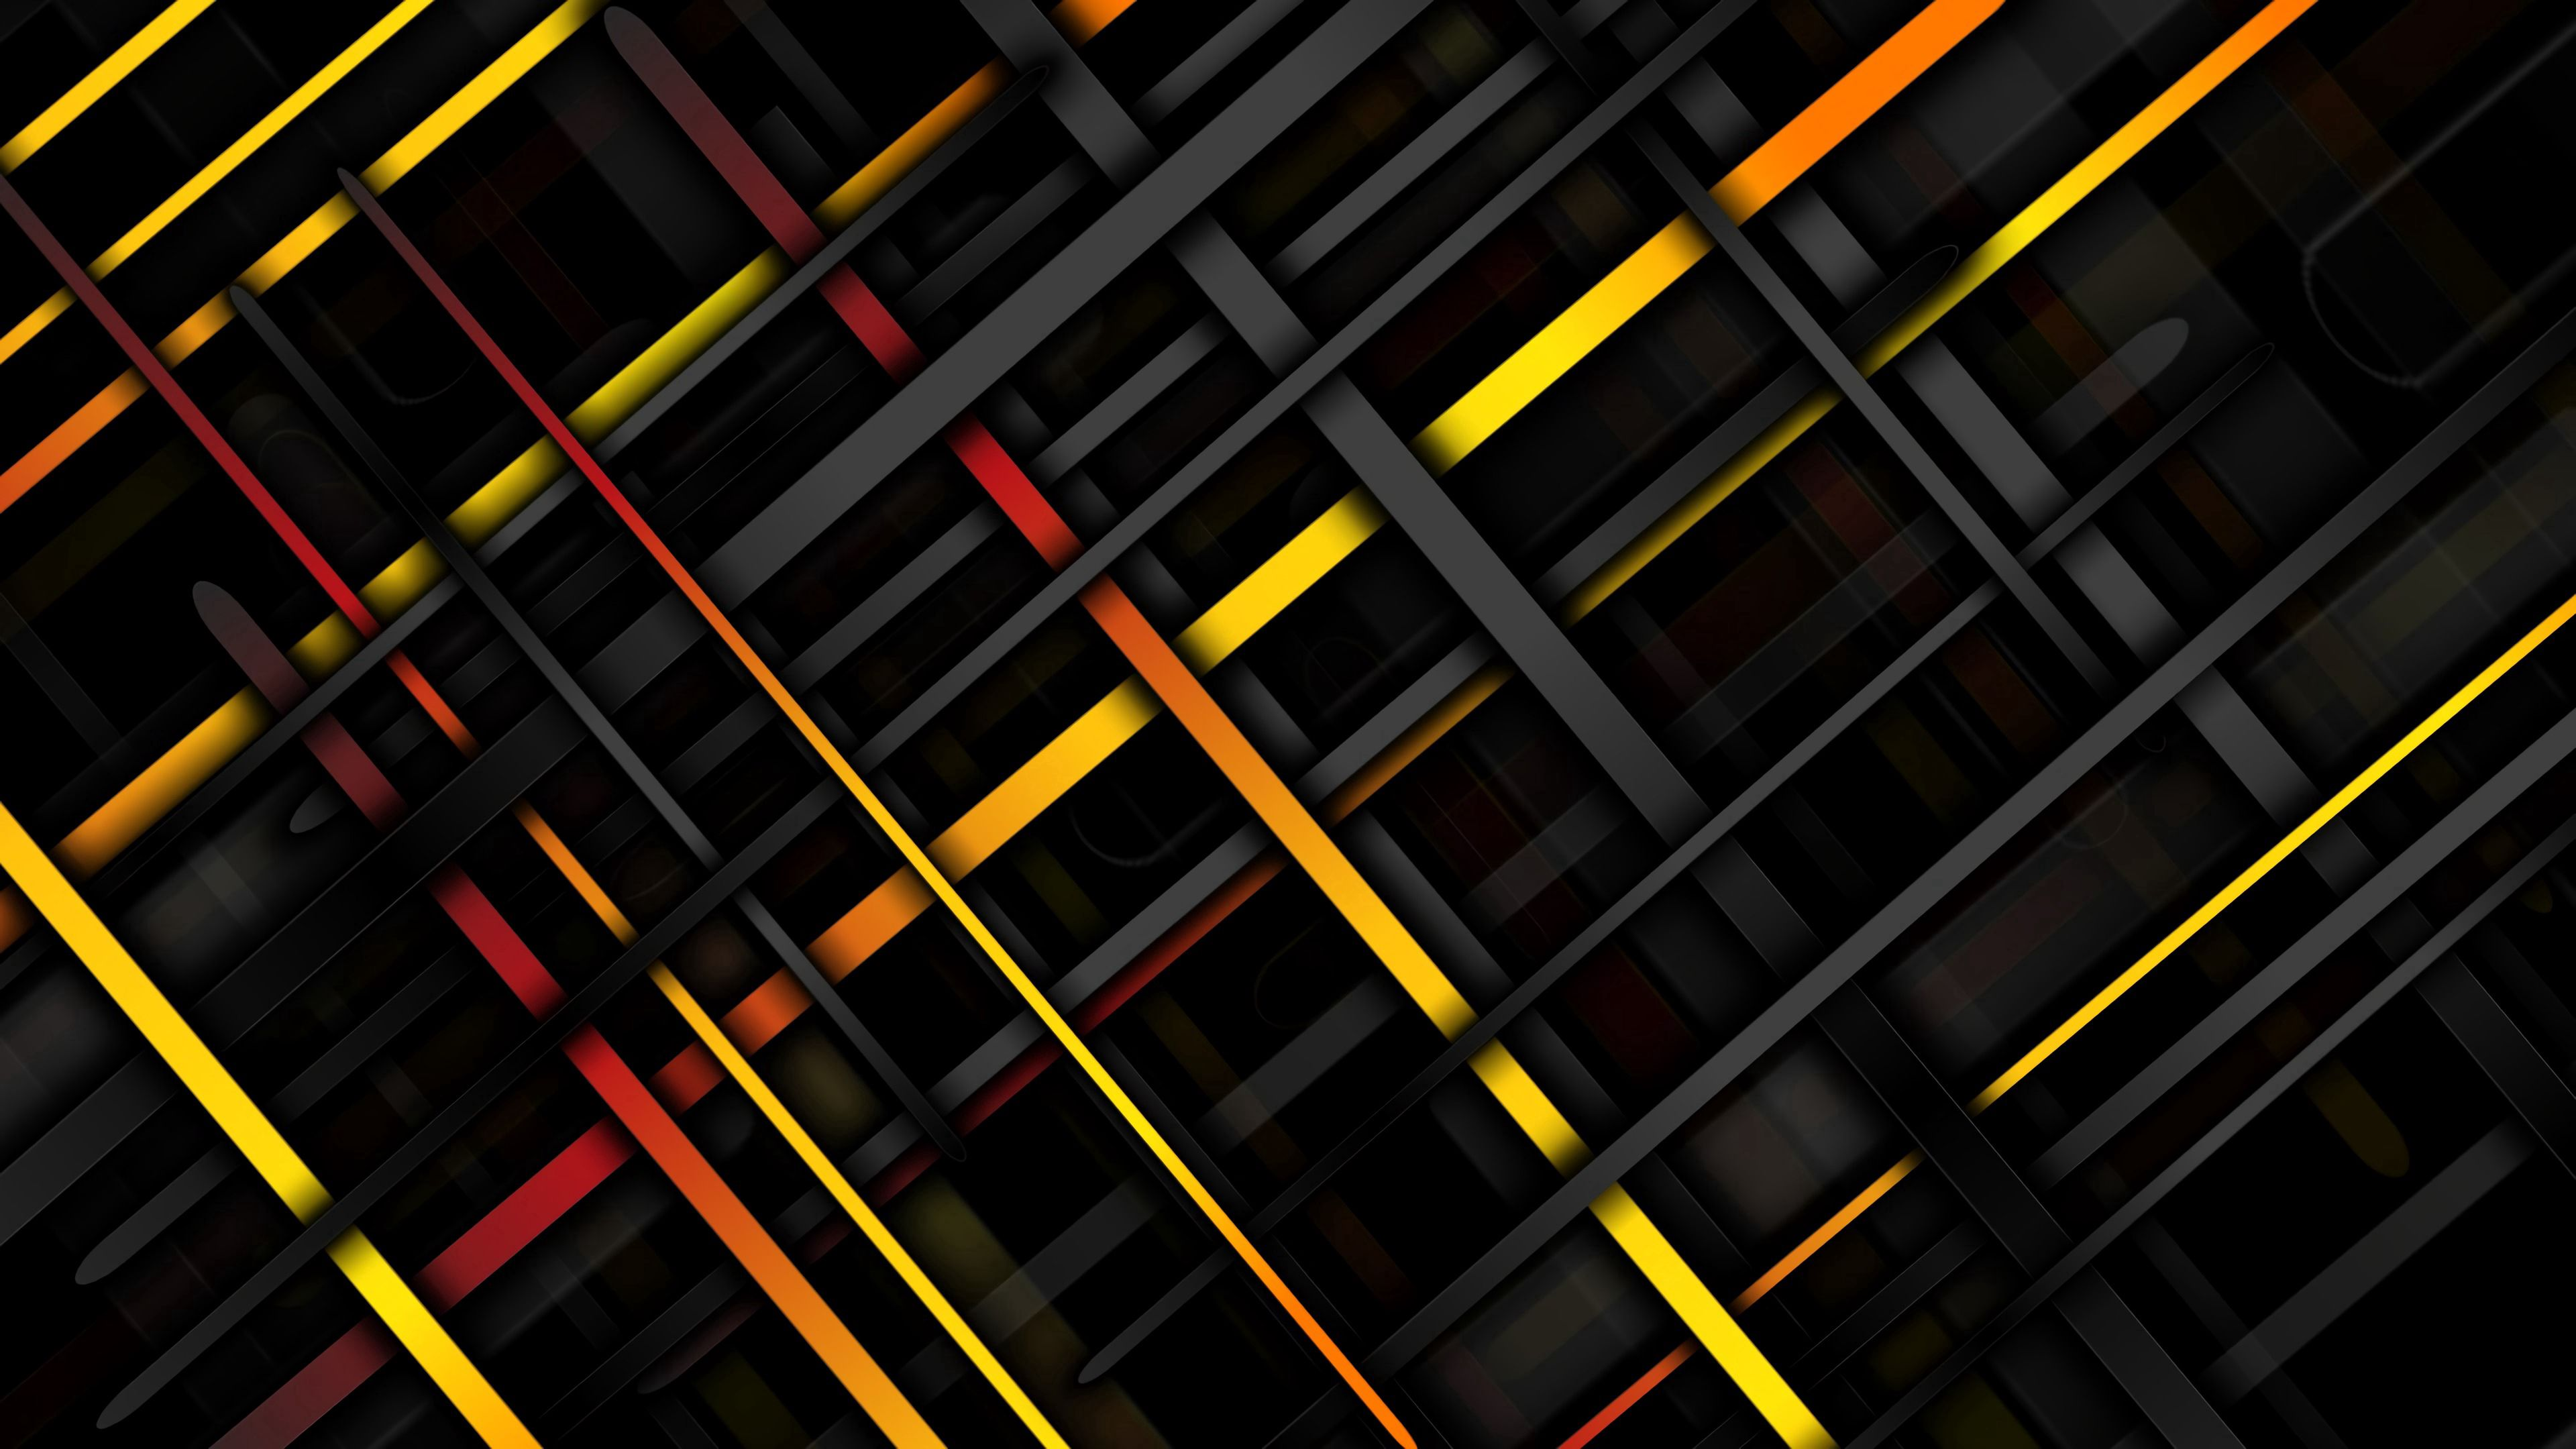 123177 download wallpaper Texture, Textures, Multicolored, Motley, Lines, Crossing, Obliquely, Intersection screensavers and pictures for free